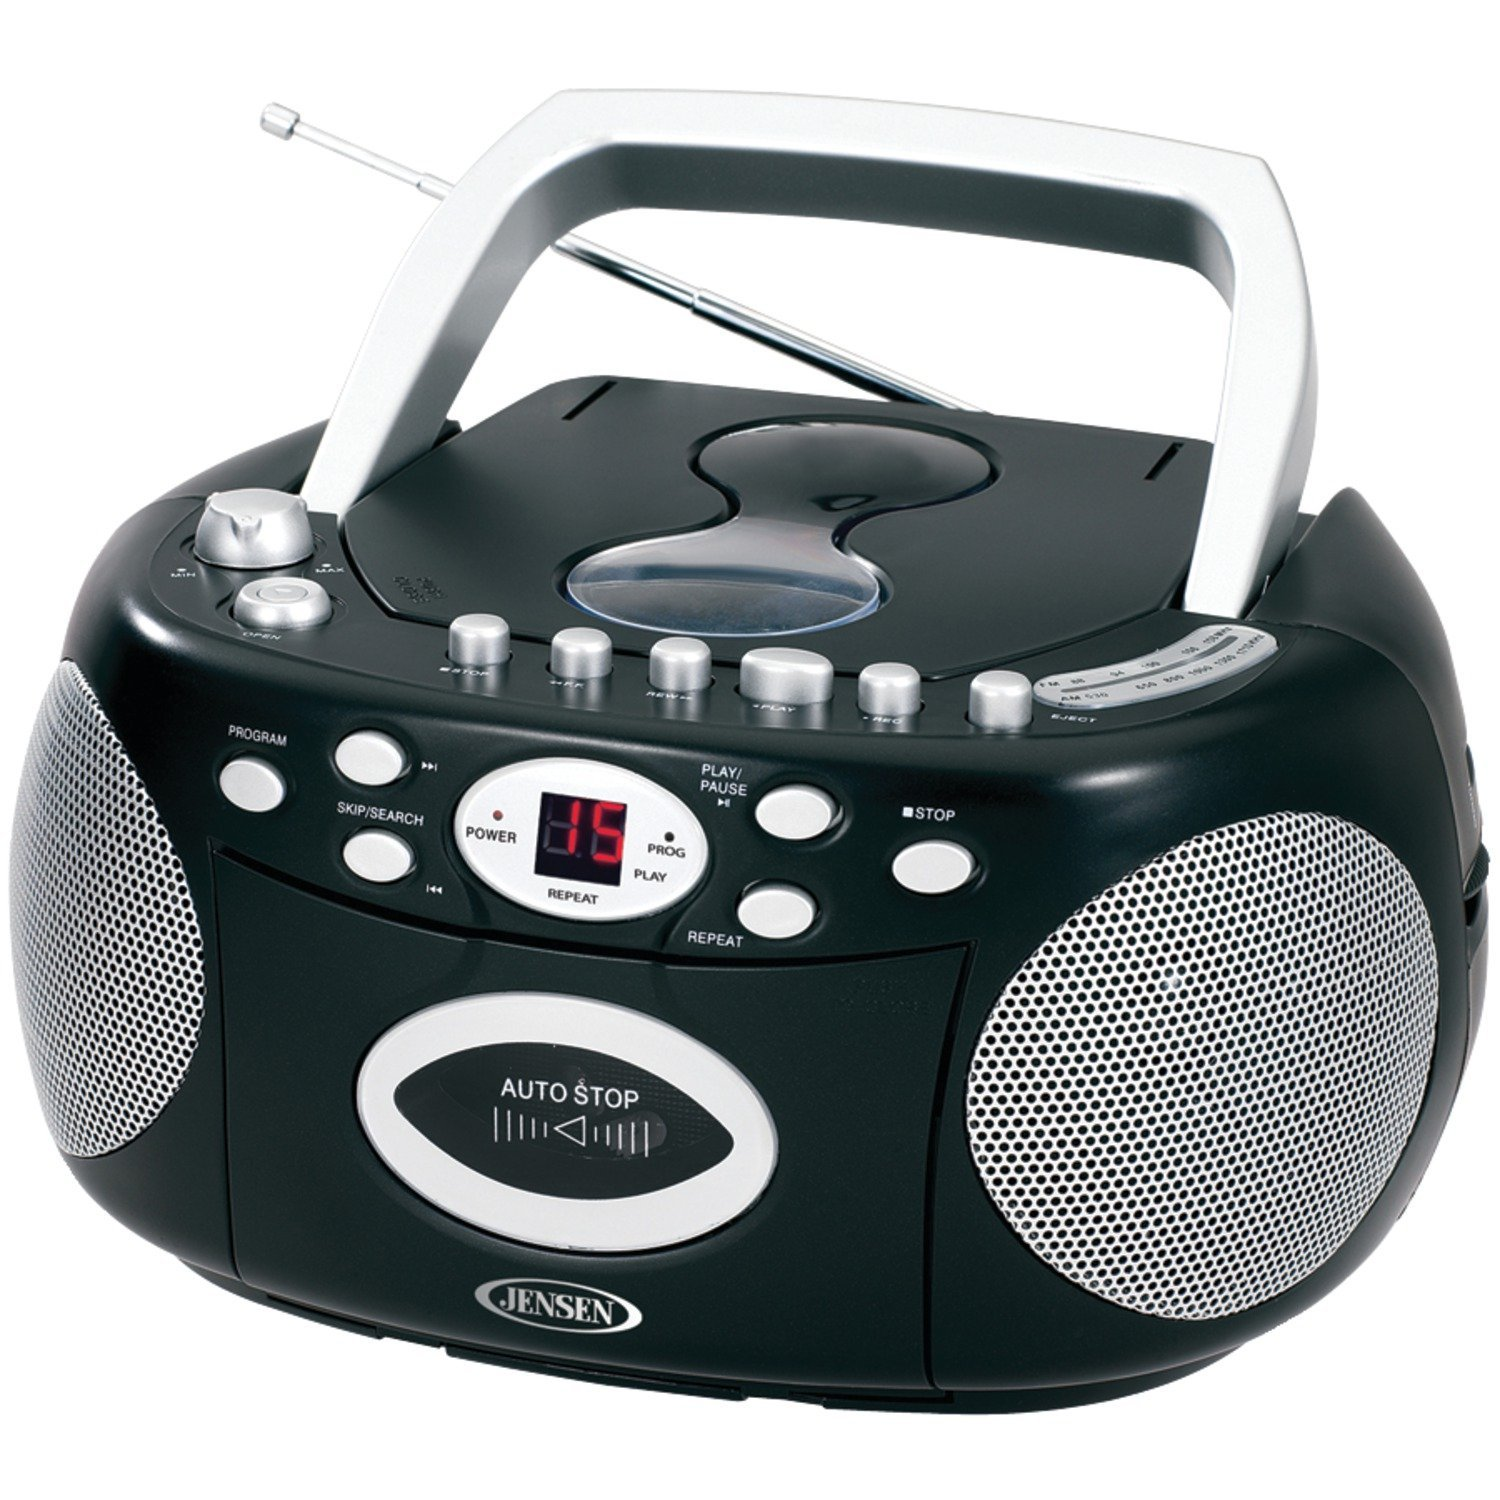 Jensen Portable Bluetooth Cd Player AM/FM Radio Tuner Mega Bass Reflex Stereo Sound System CD Players